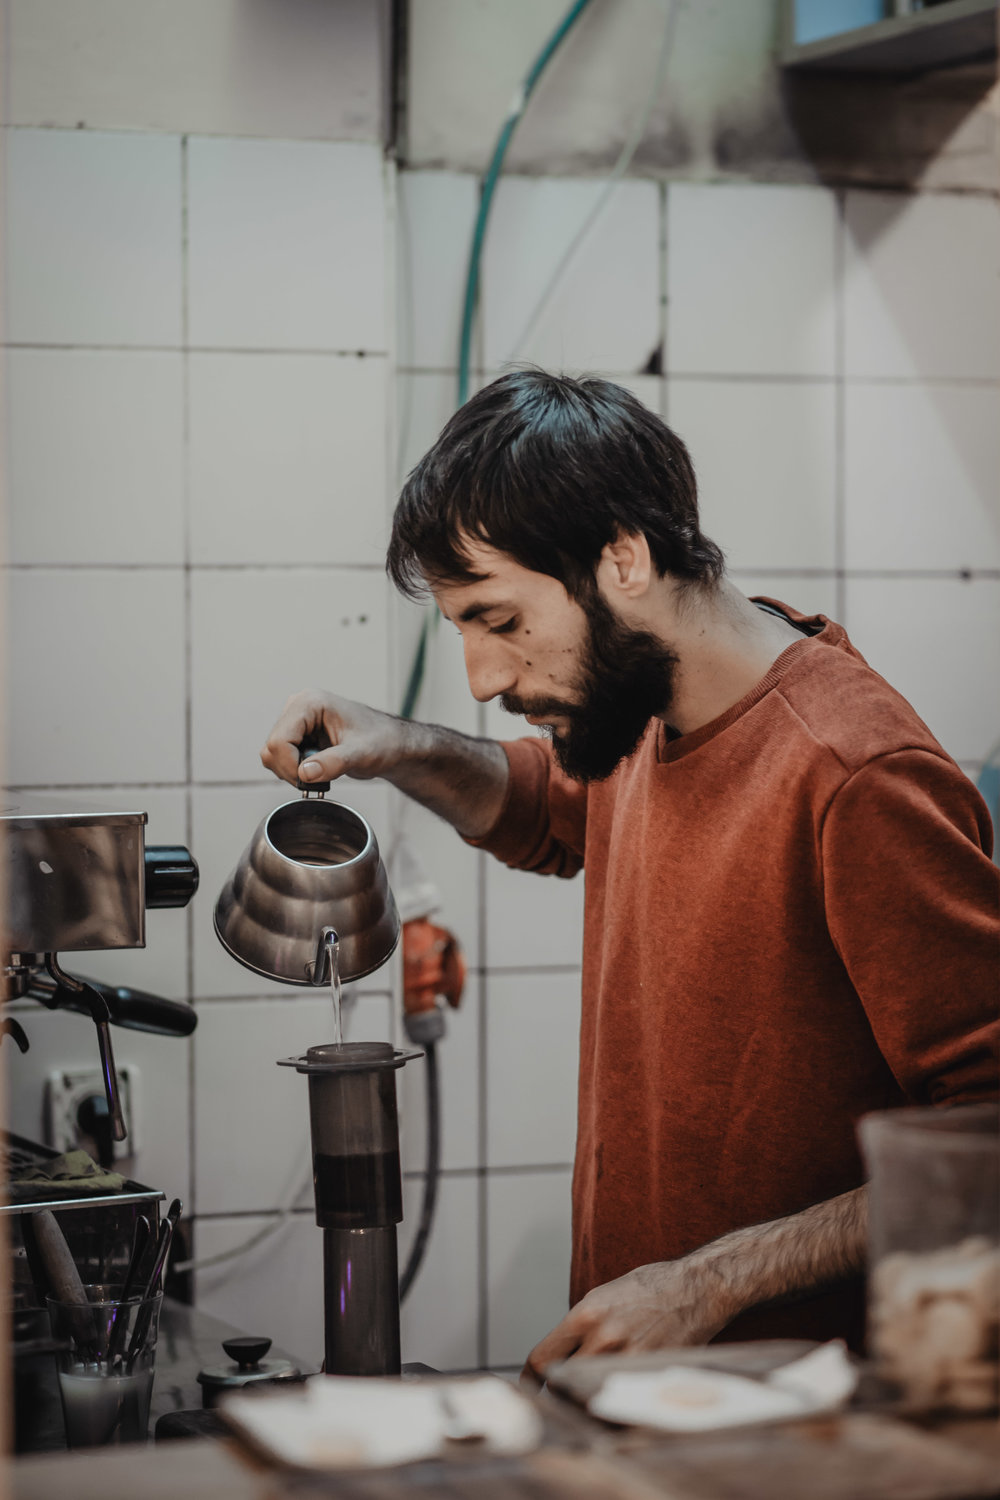 Dotan preparing coffee using the Aeropress